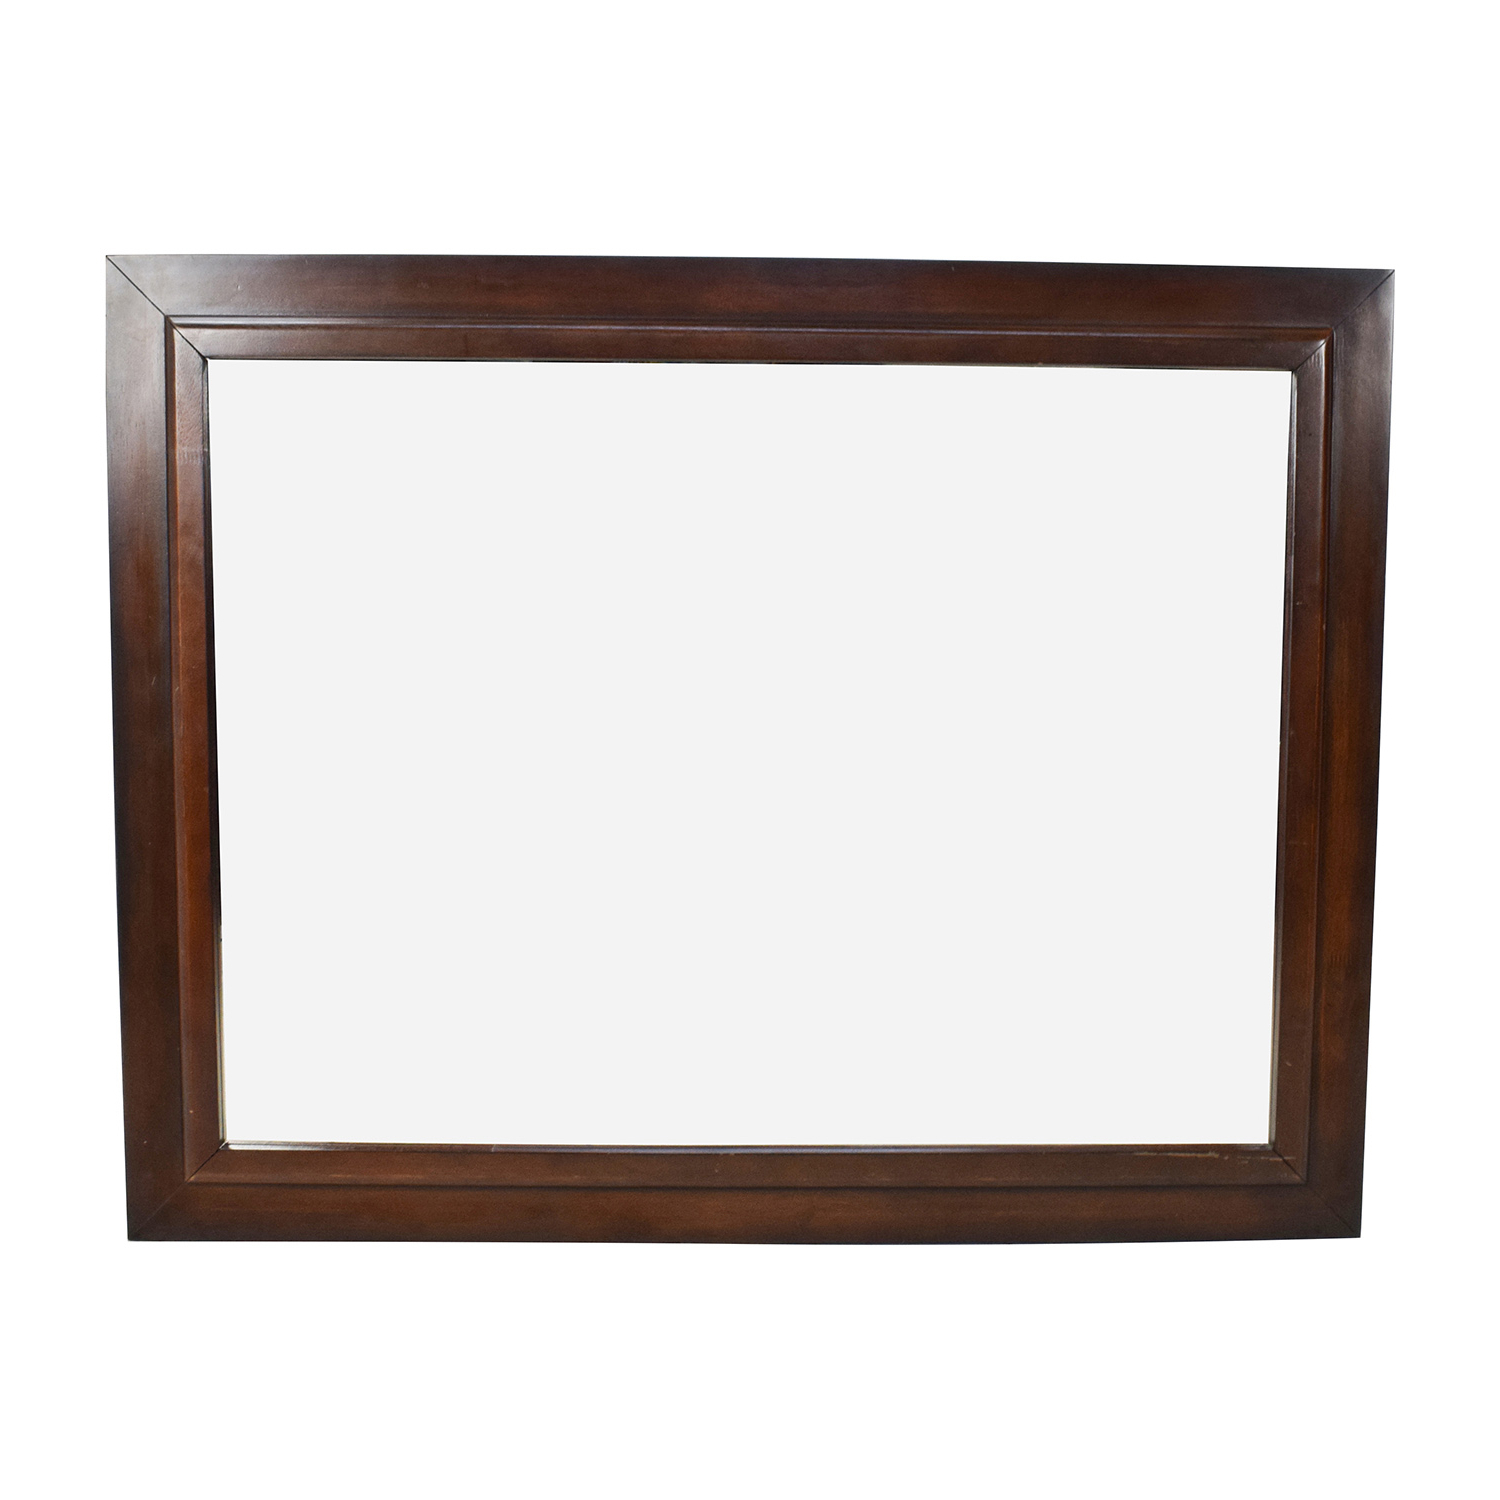 [%80% Off – Large Square Wood Framed Wall Mirror / Decor For Recent Large Square Wall Mirrors|Large Square Wall Mirrors Intended For Preferred 80% Off – Large Square Wood Framed Wall Mirror / Decor|Well Known Large Square Wall Mirrors Pertaining To 80% Off – Large Square Wood Framed Wall Mirror / Decor|Well Known 80% Off – Large Square Wood Framed Wall Mirror / Decor With Large Square Wall Mirrors%] (View 1 of 20)